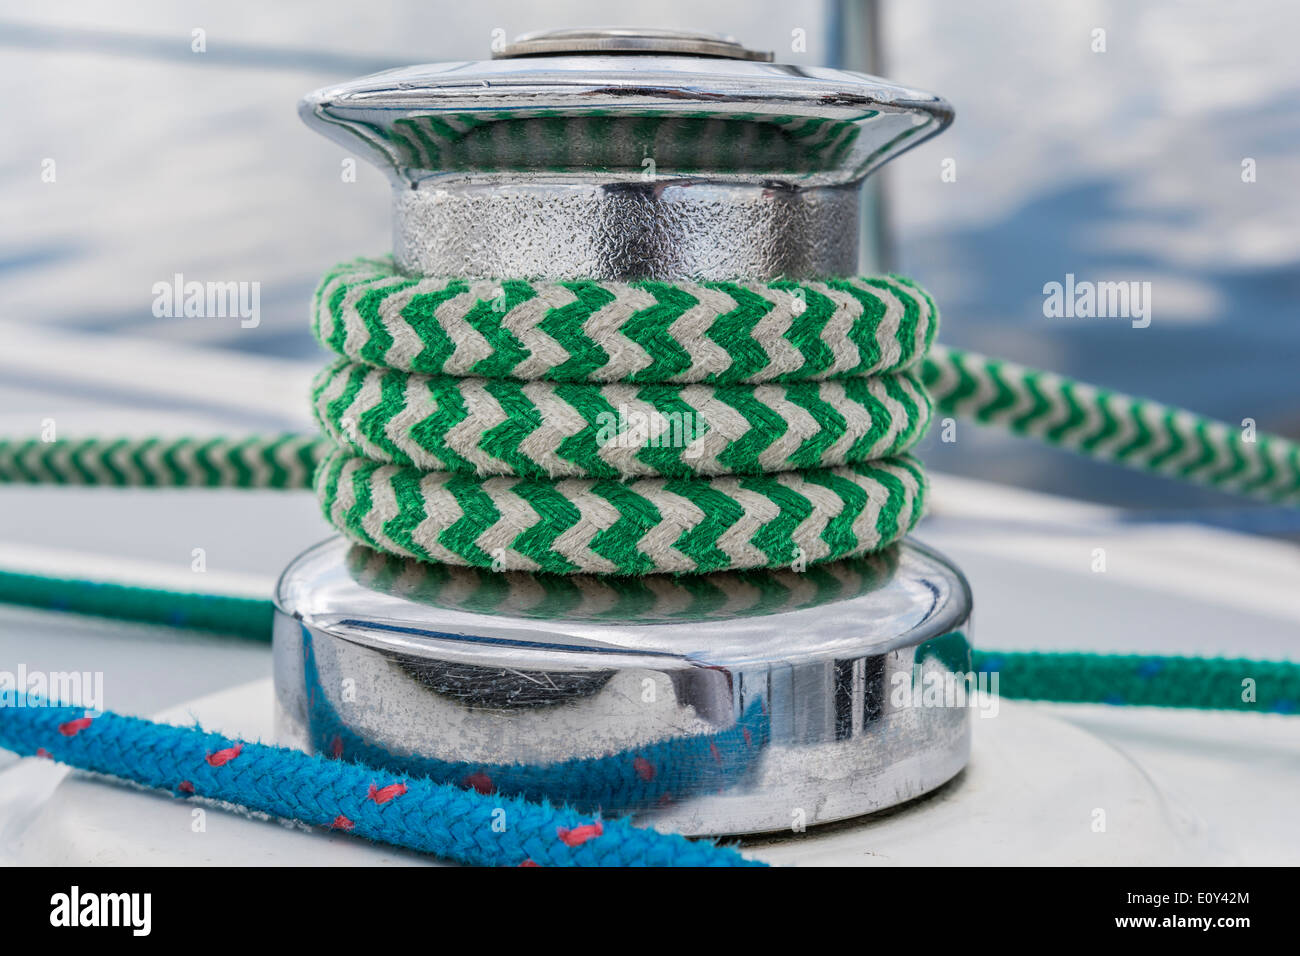 Sail yacht - close up on winch and green rope - Stock Image